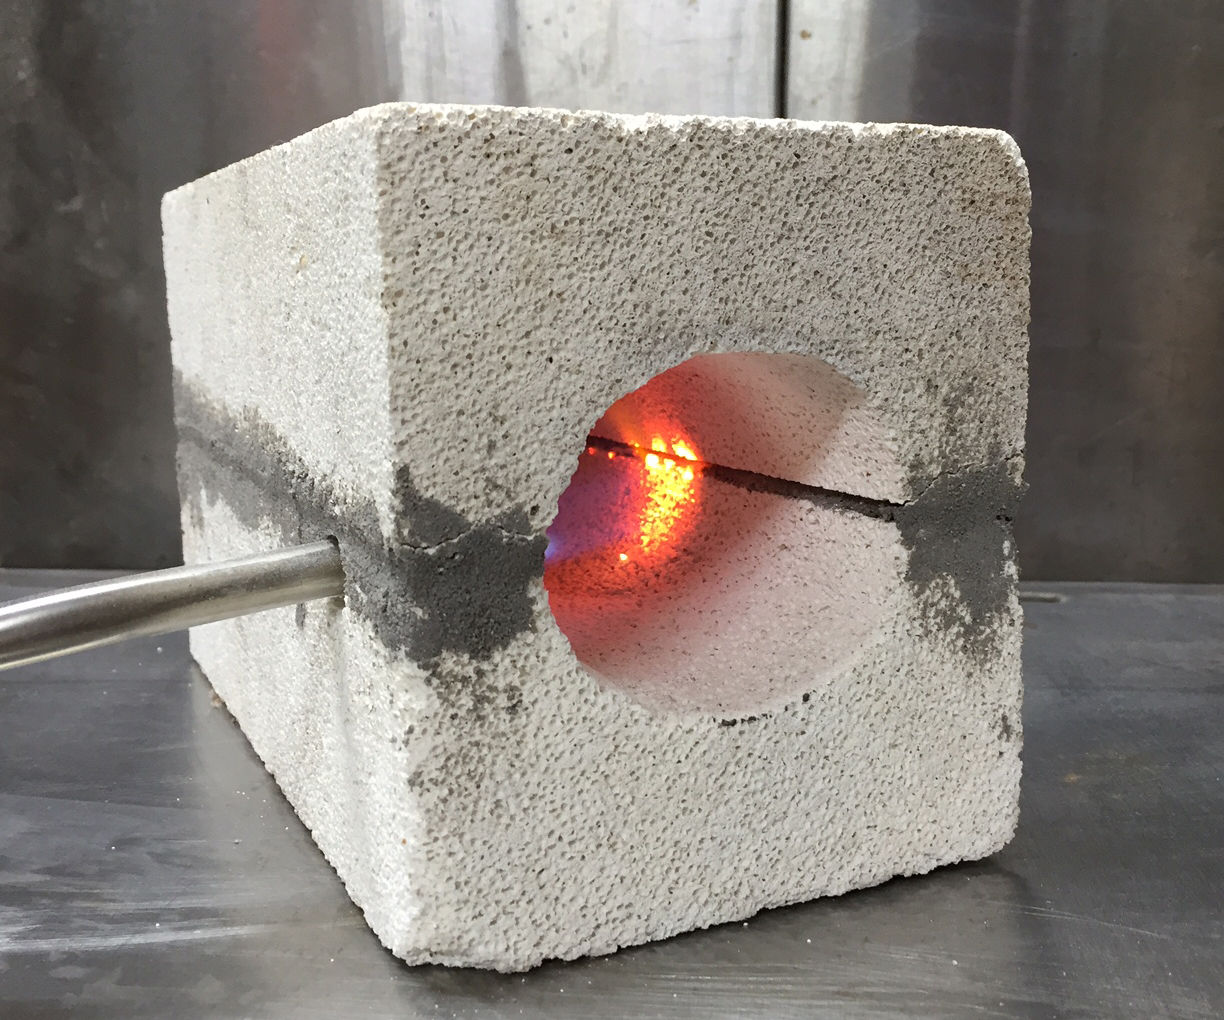 How to make a Mini Forge